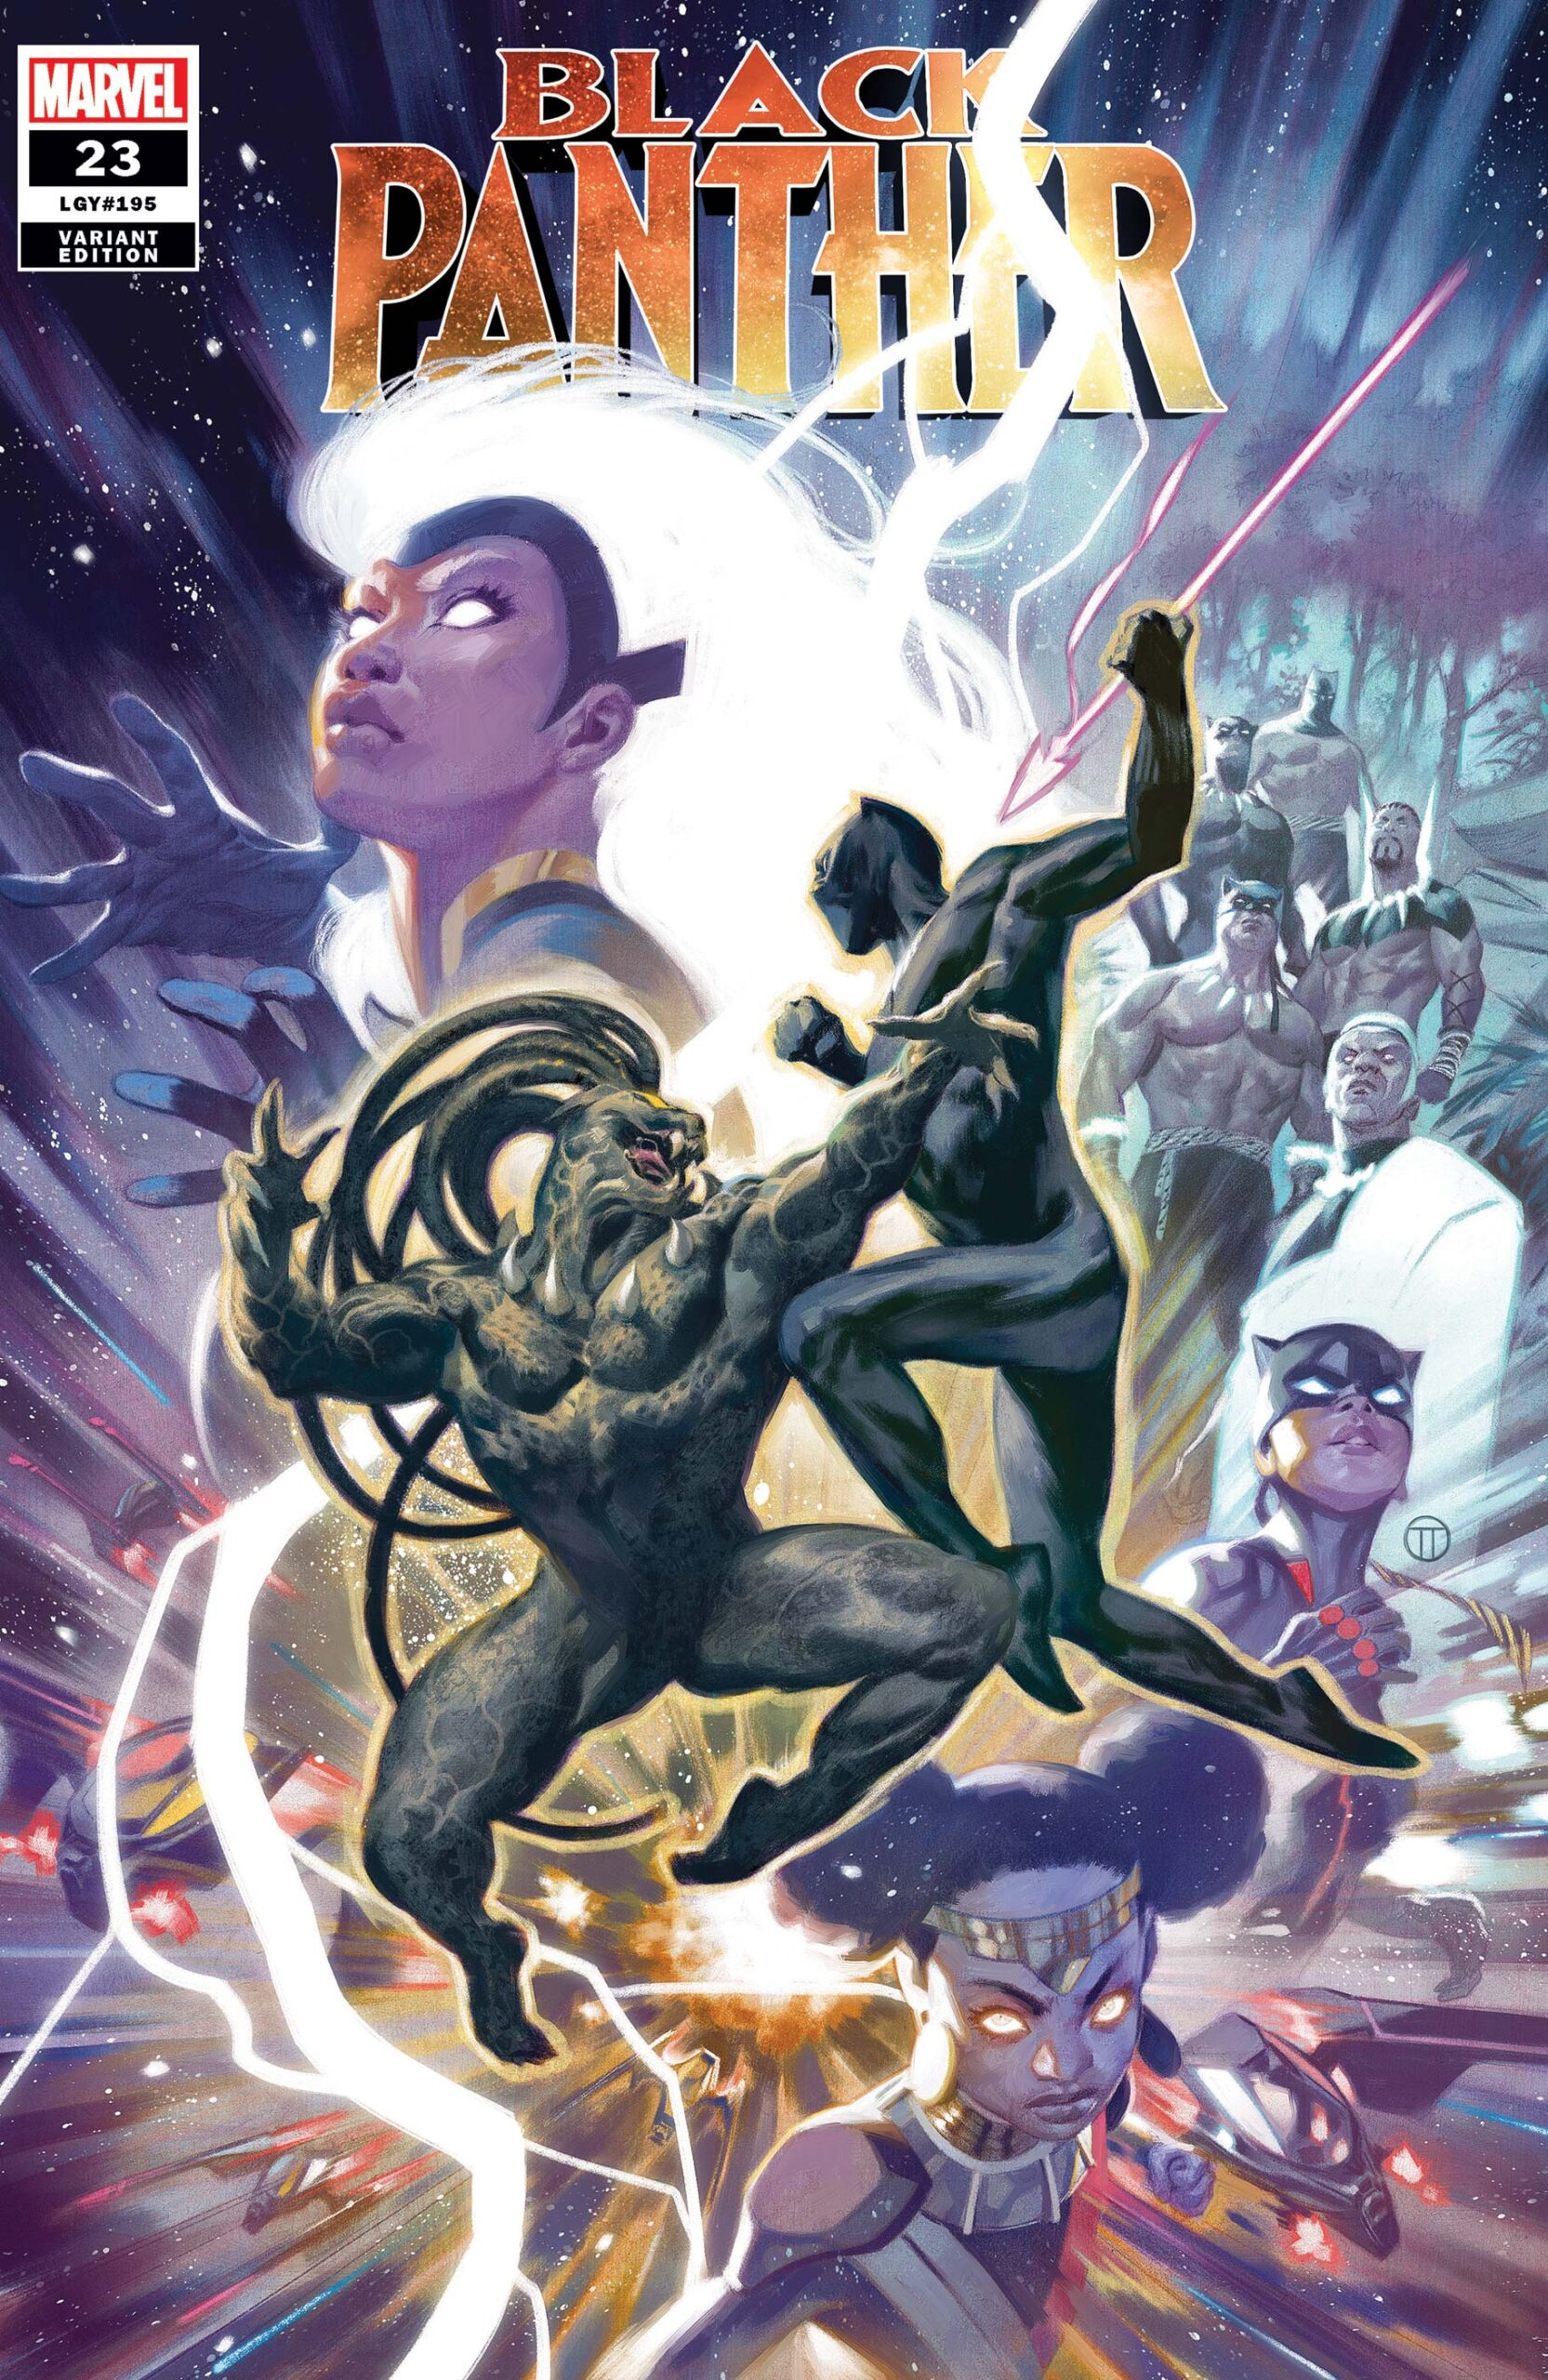 BlackPanther23Variant scaled